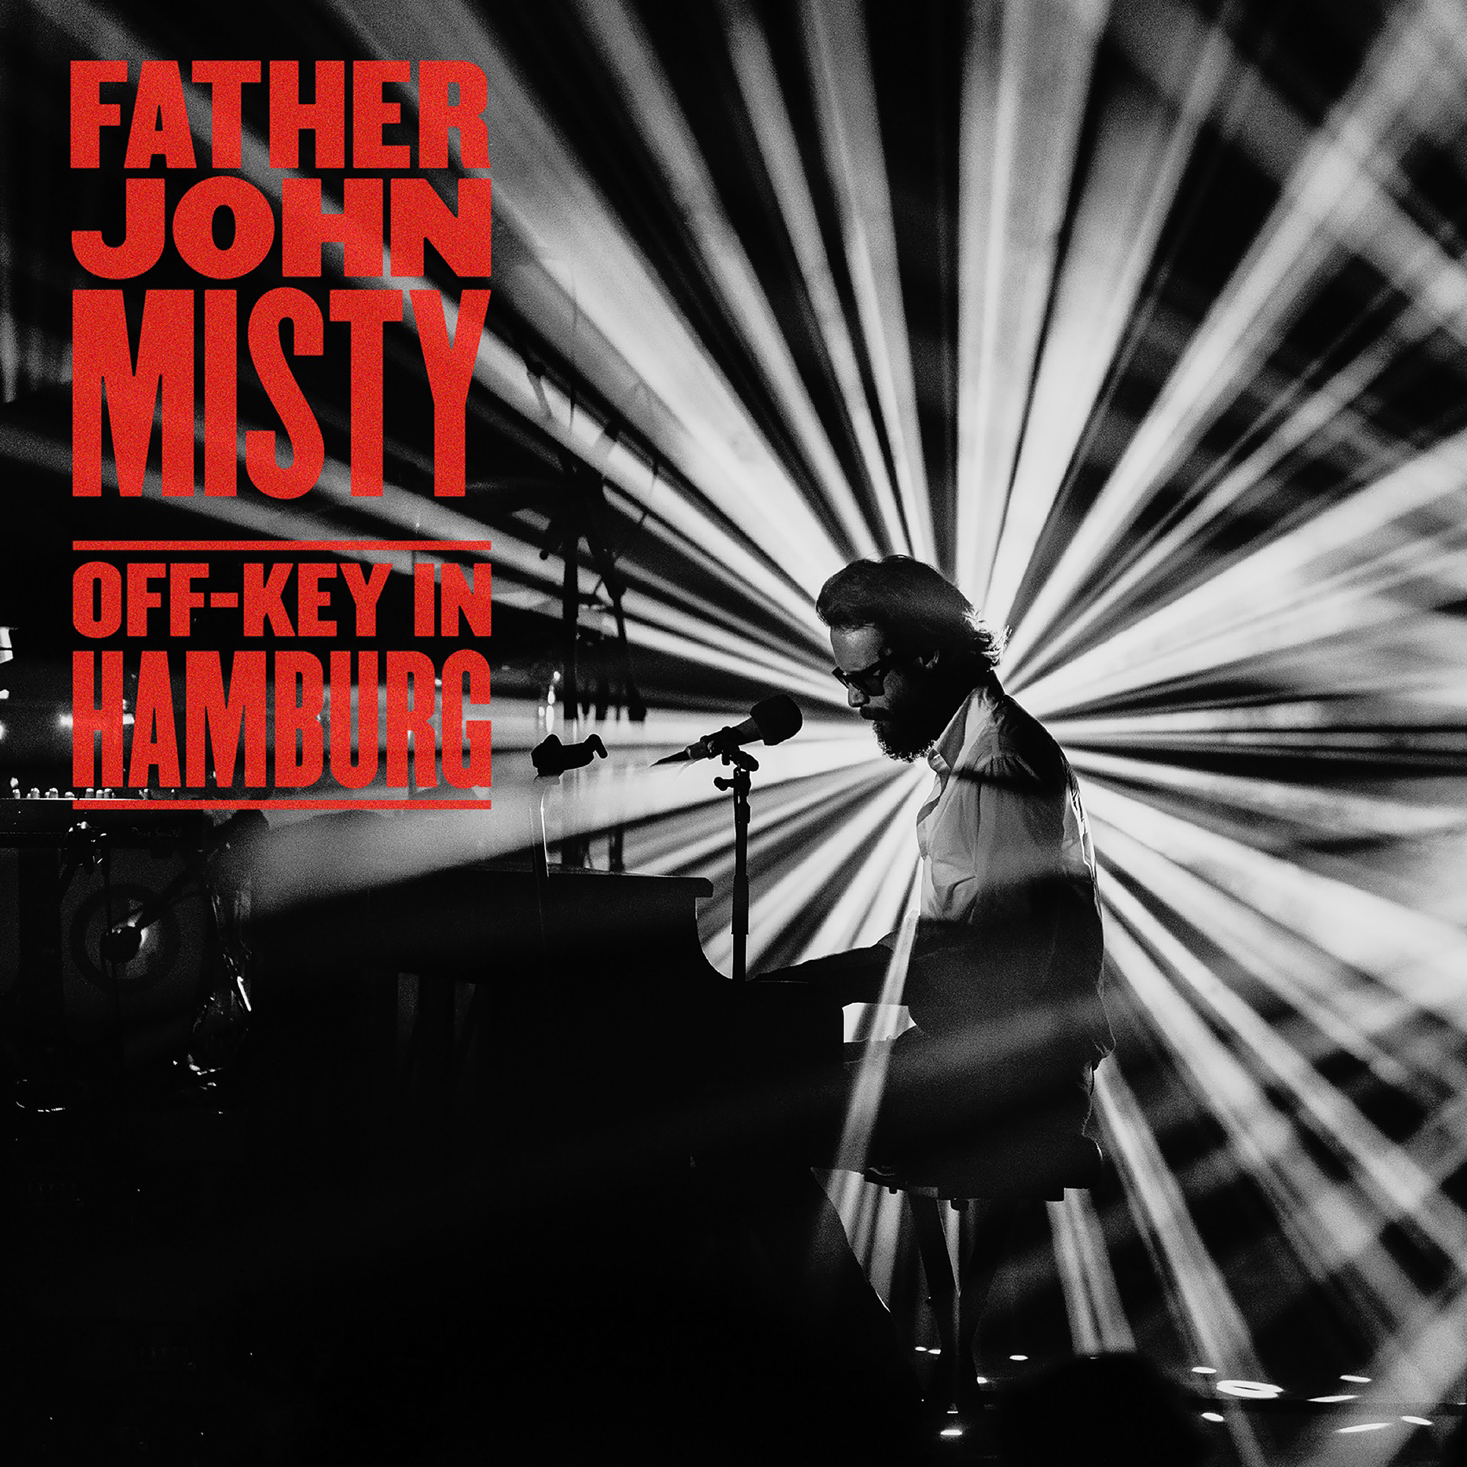 FATHER JOHN MISTY releases live album 'Off-Key In Hamburg' - all proceeds from the release will be donated to MusiCares COVID-19 Relief Fund